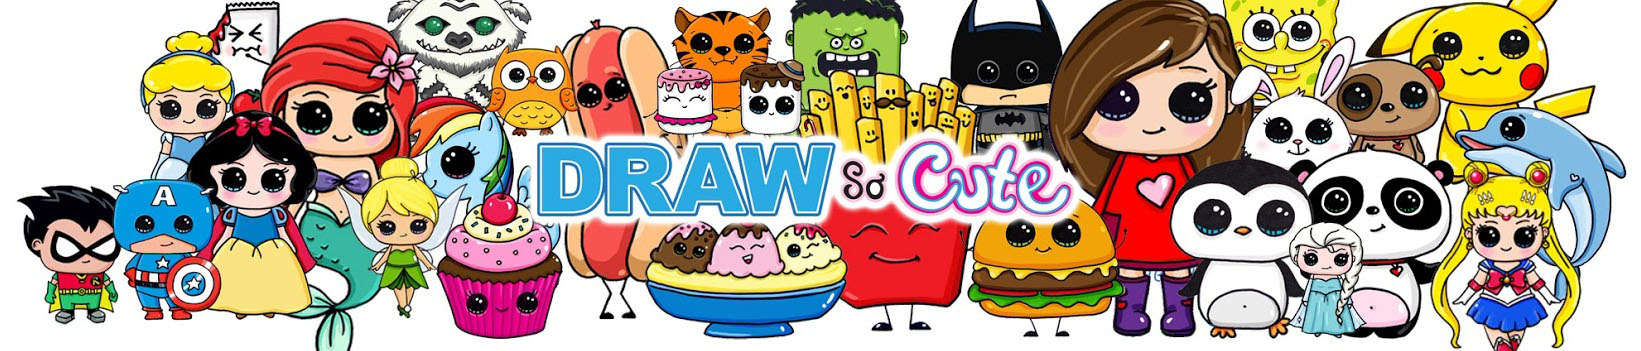 draw so cute birthday cake ; dscbannerfinal3_cropped